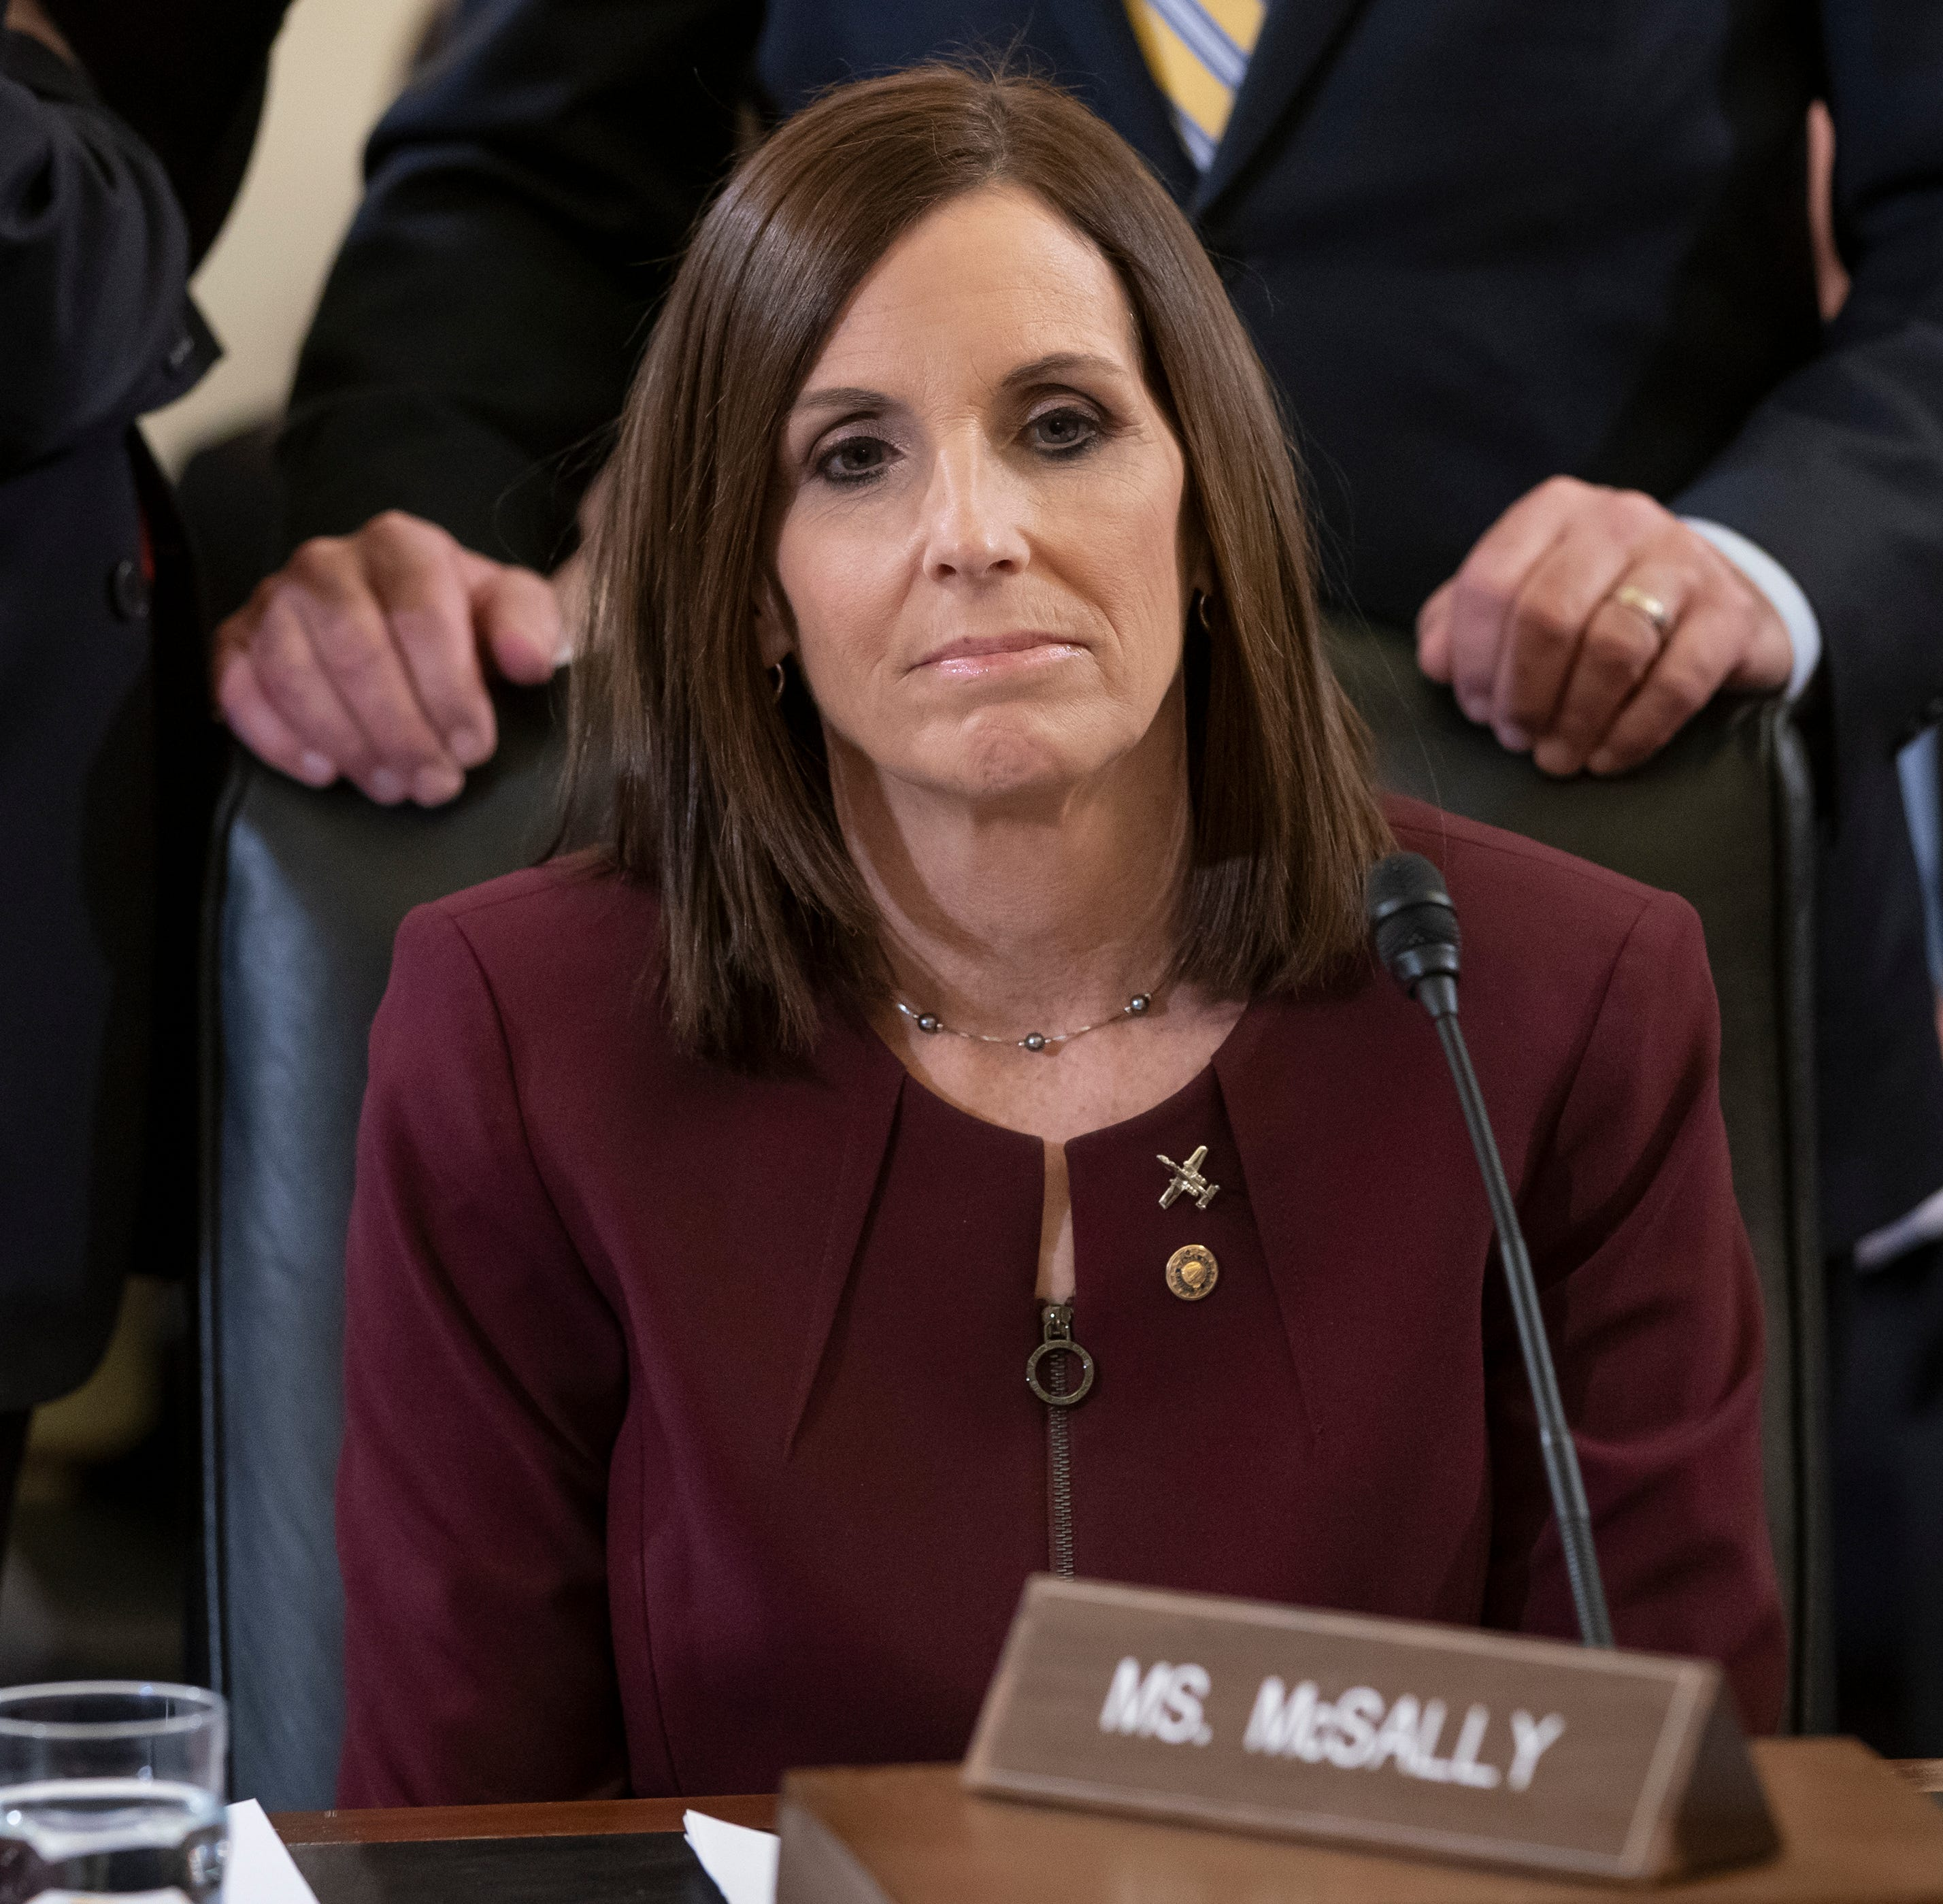 Sen. Martha McSally reveals she was raped by superior officer while in the Air Force